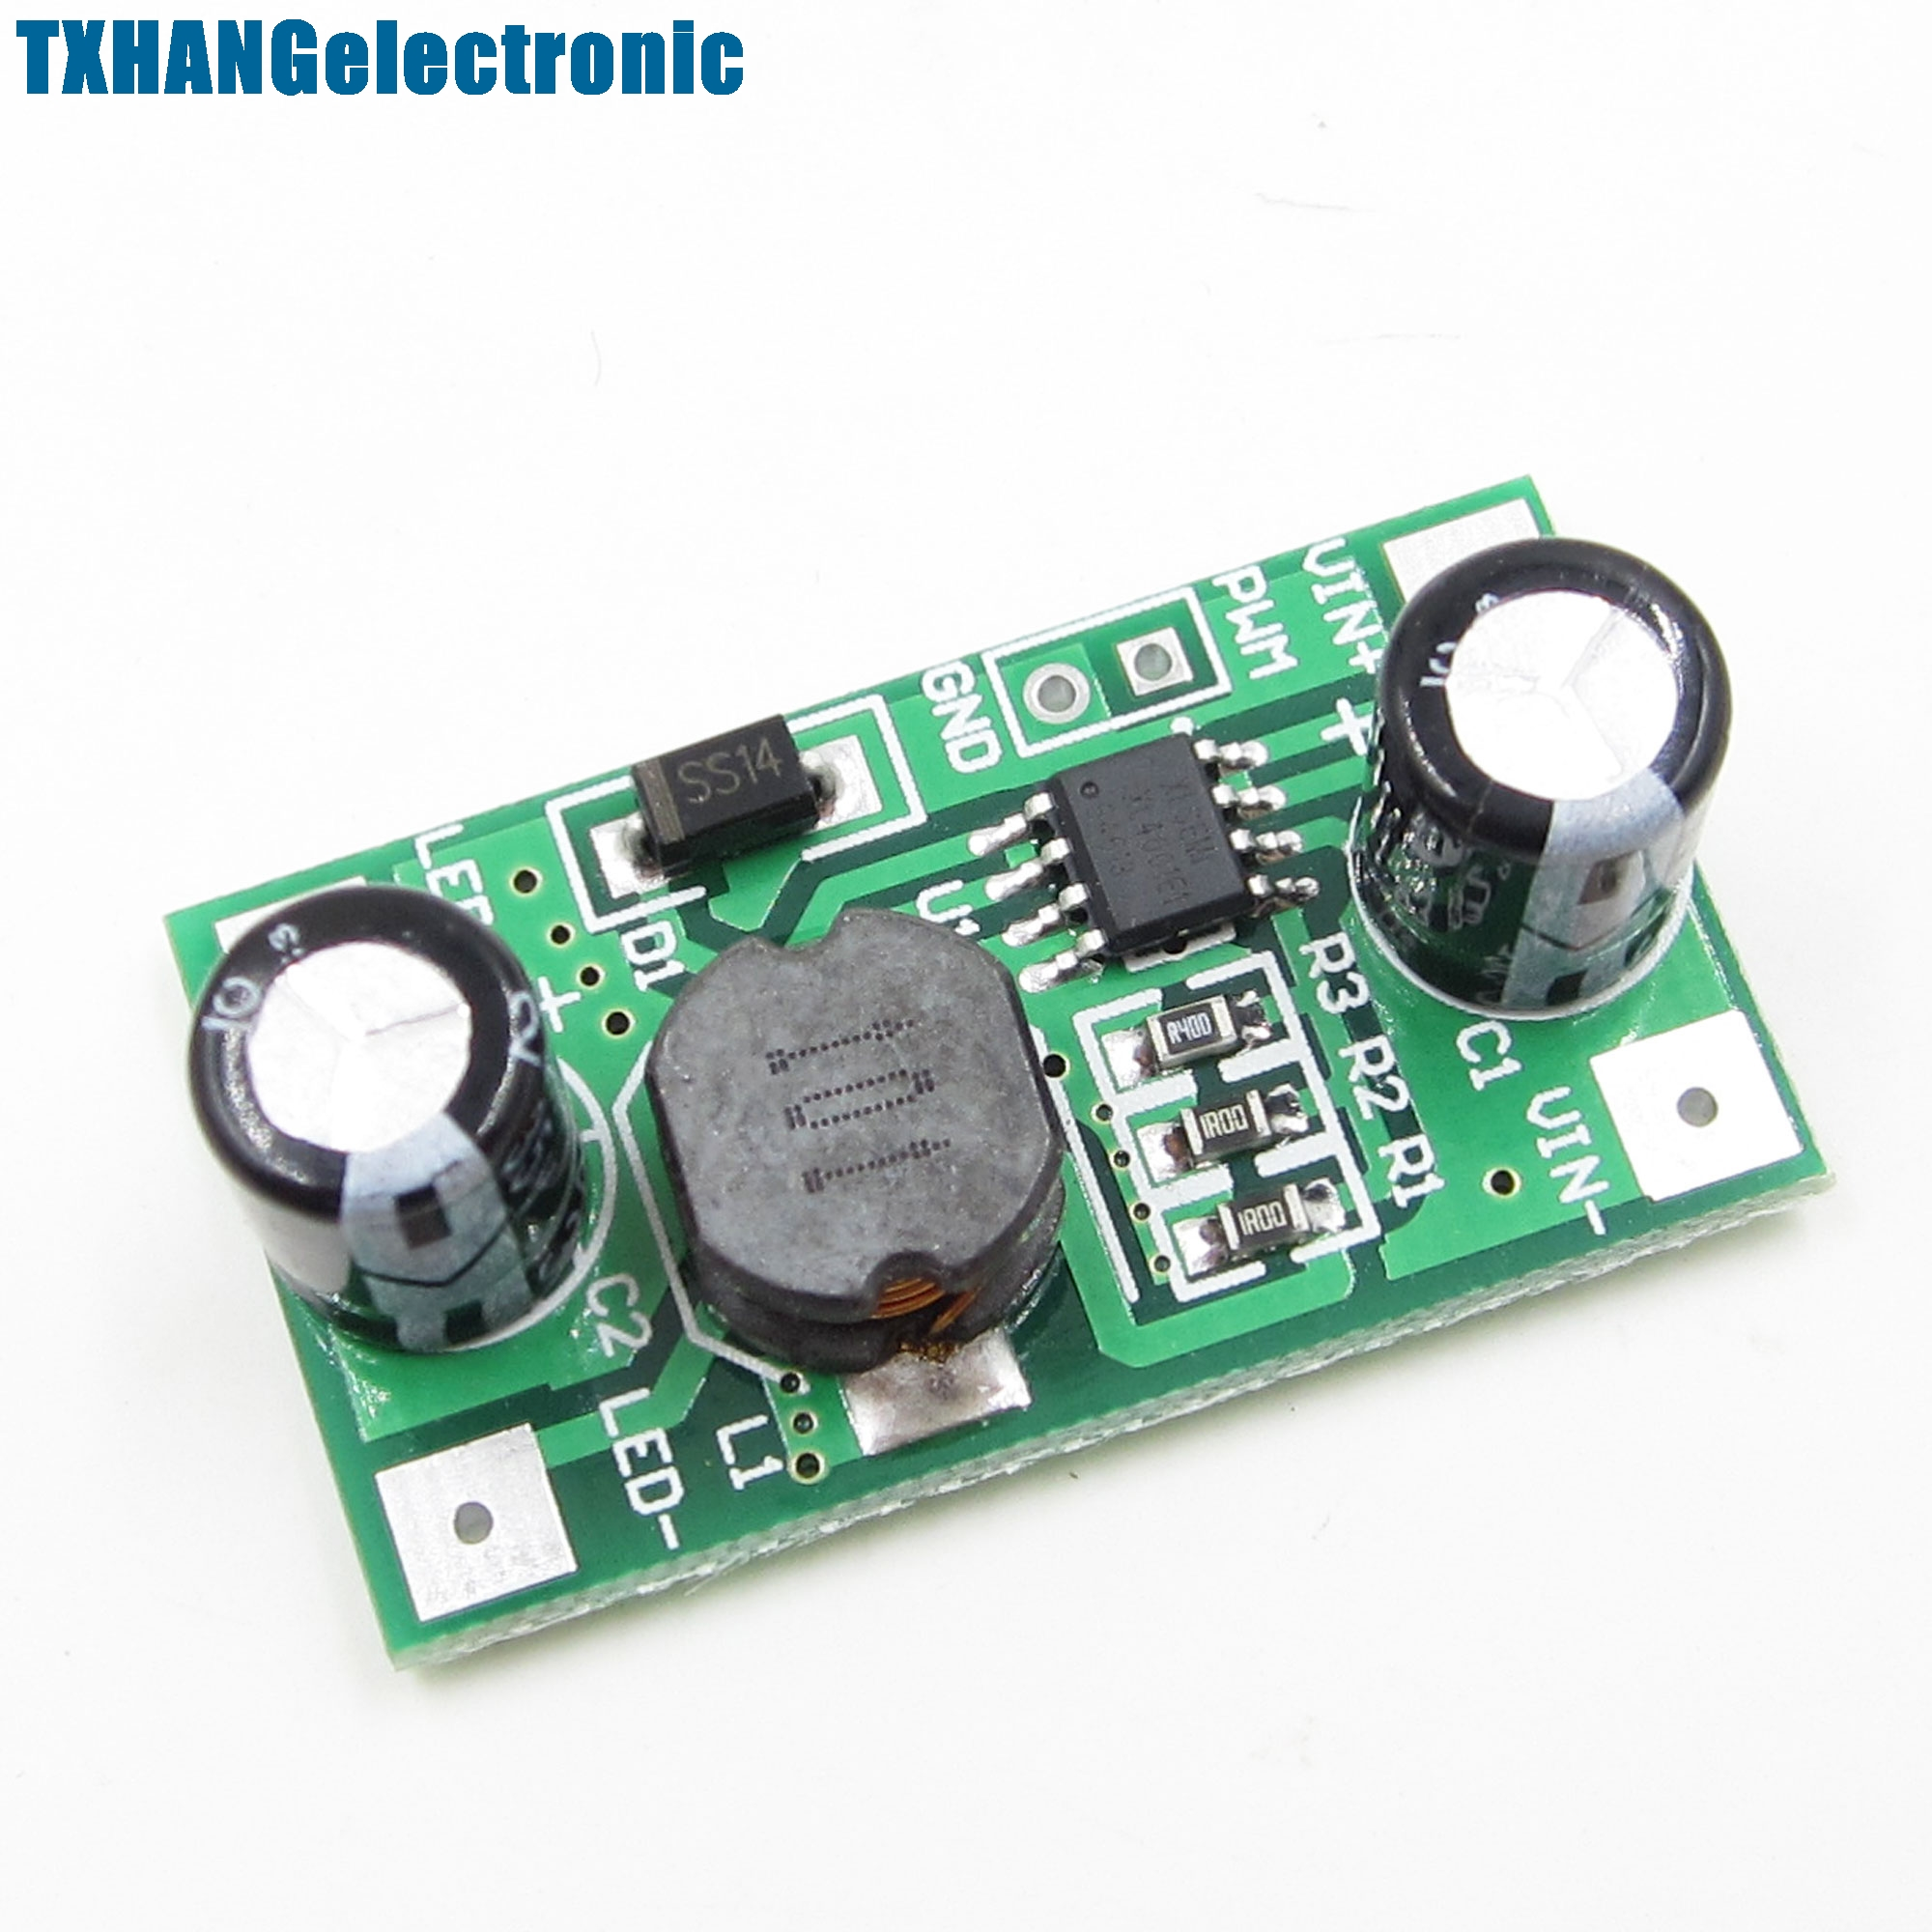 1w Led Driver 350ma Pwm Dimming Input 5 35v Dc Step Down Constant For Rgb Video Displays 5pcs 3w 700ma To